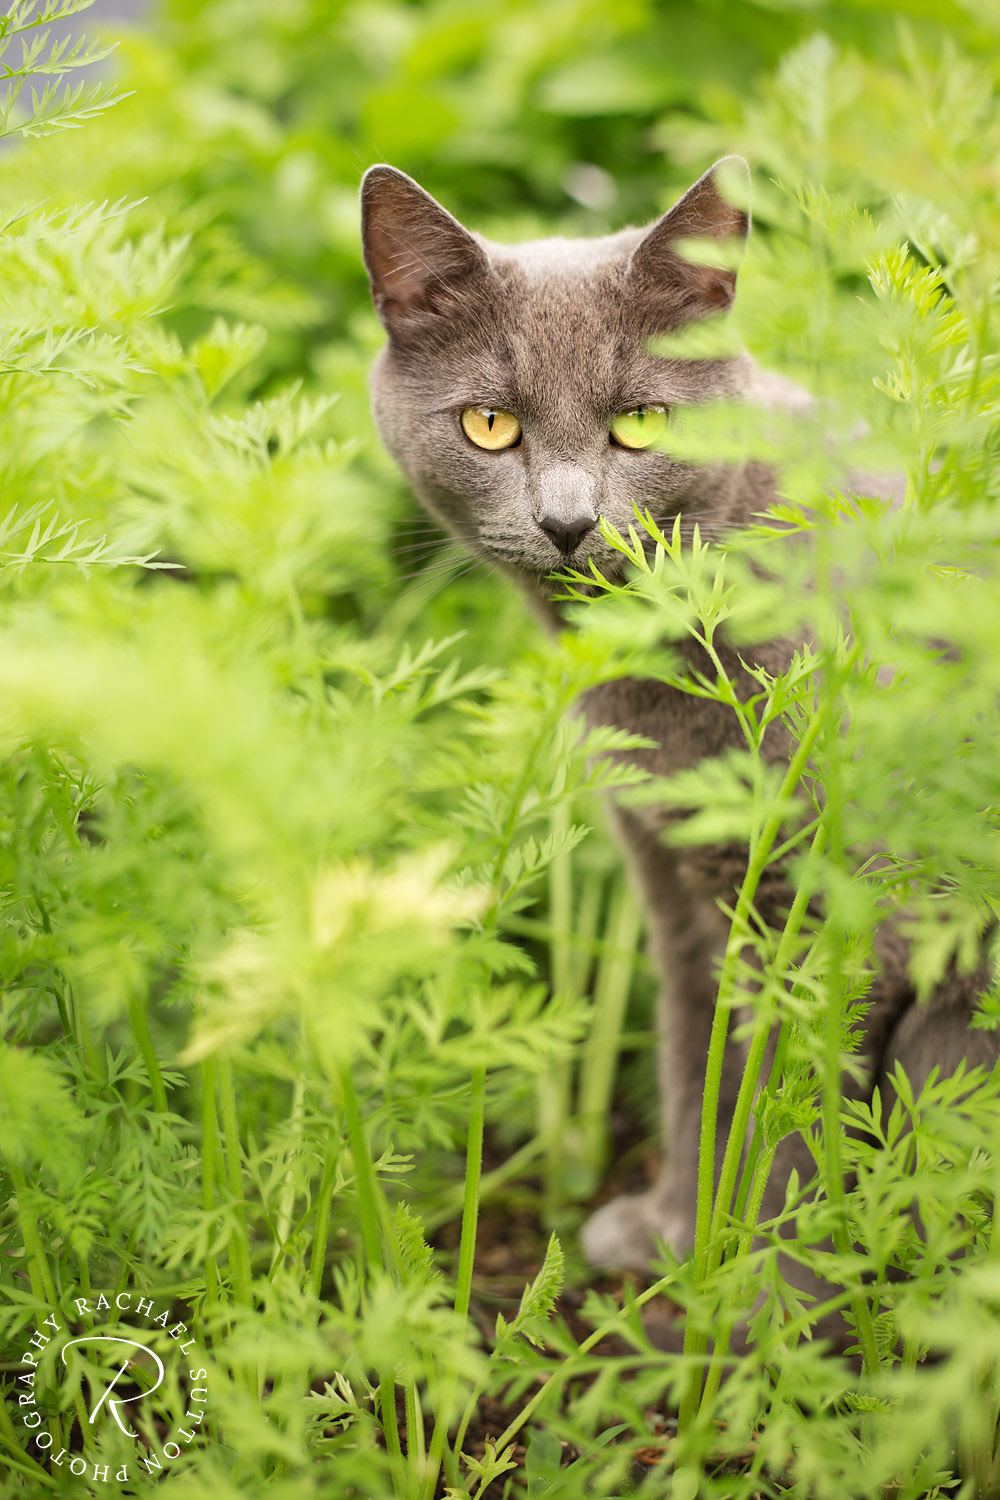 cat photo, cat in the grass, cat photography